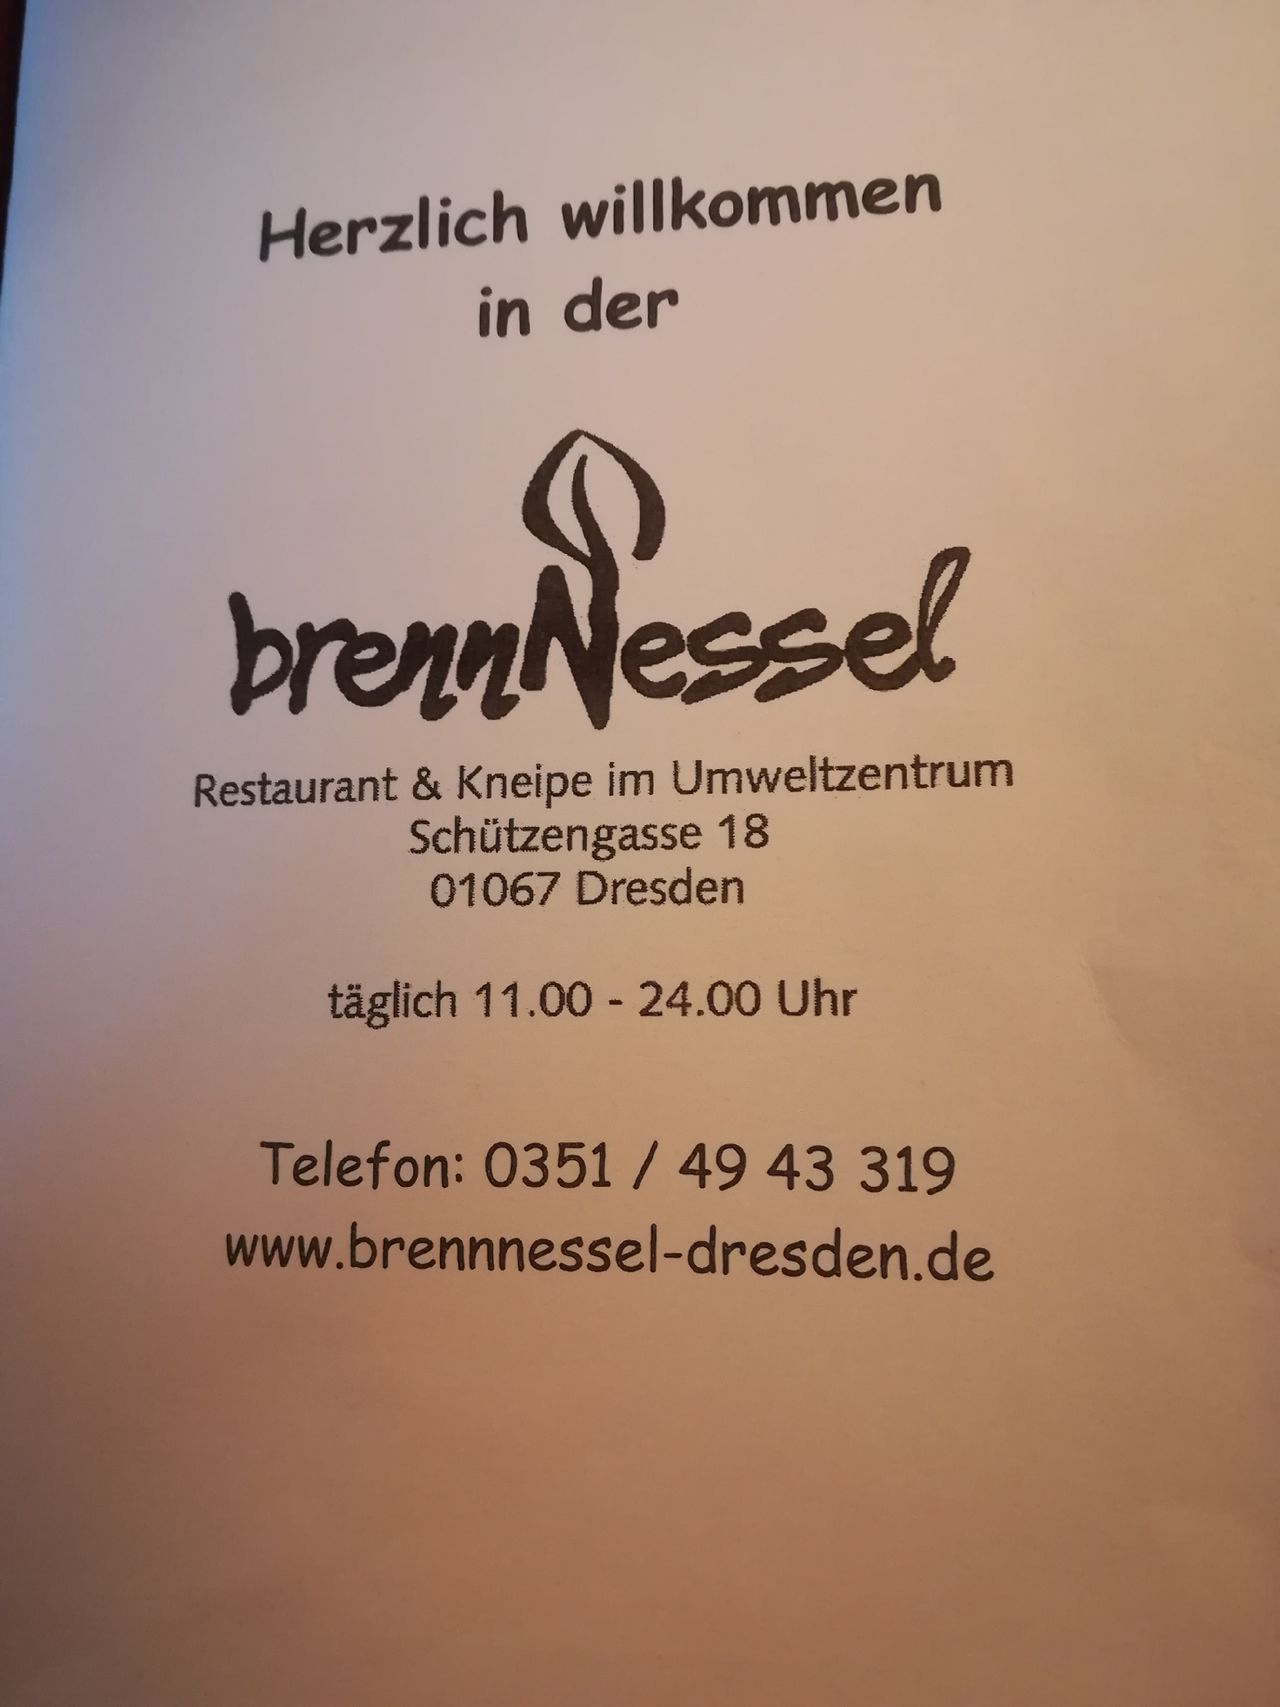 A photo of brennNessel